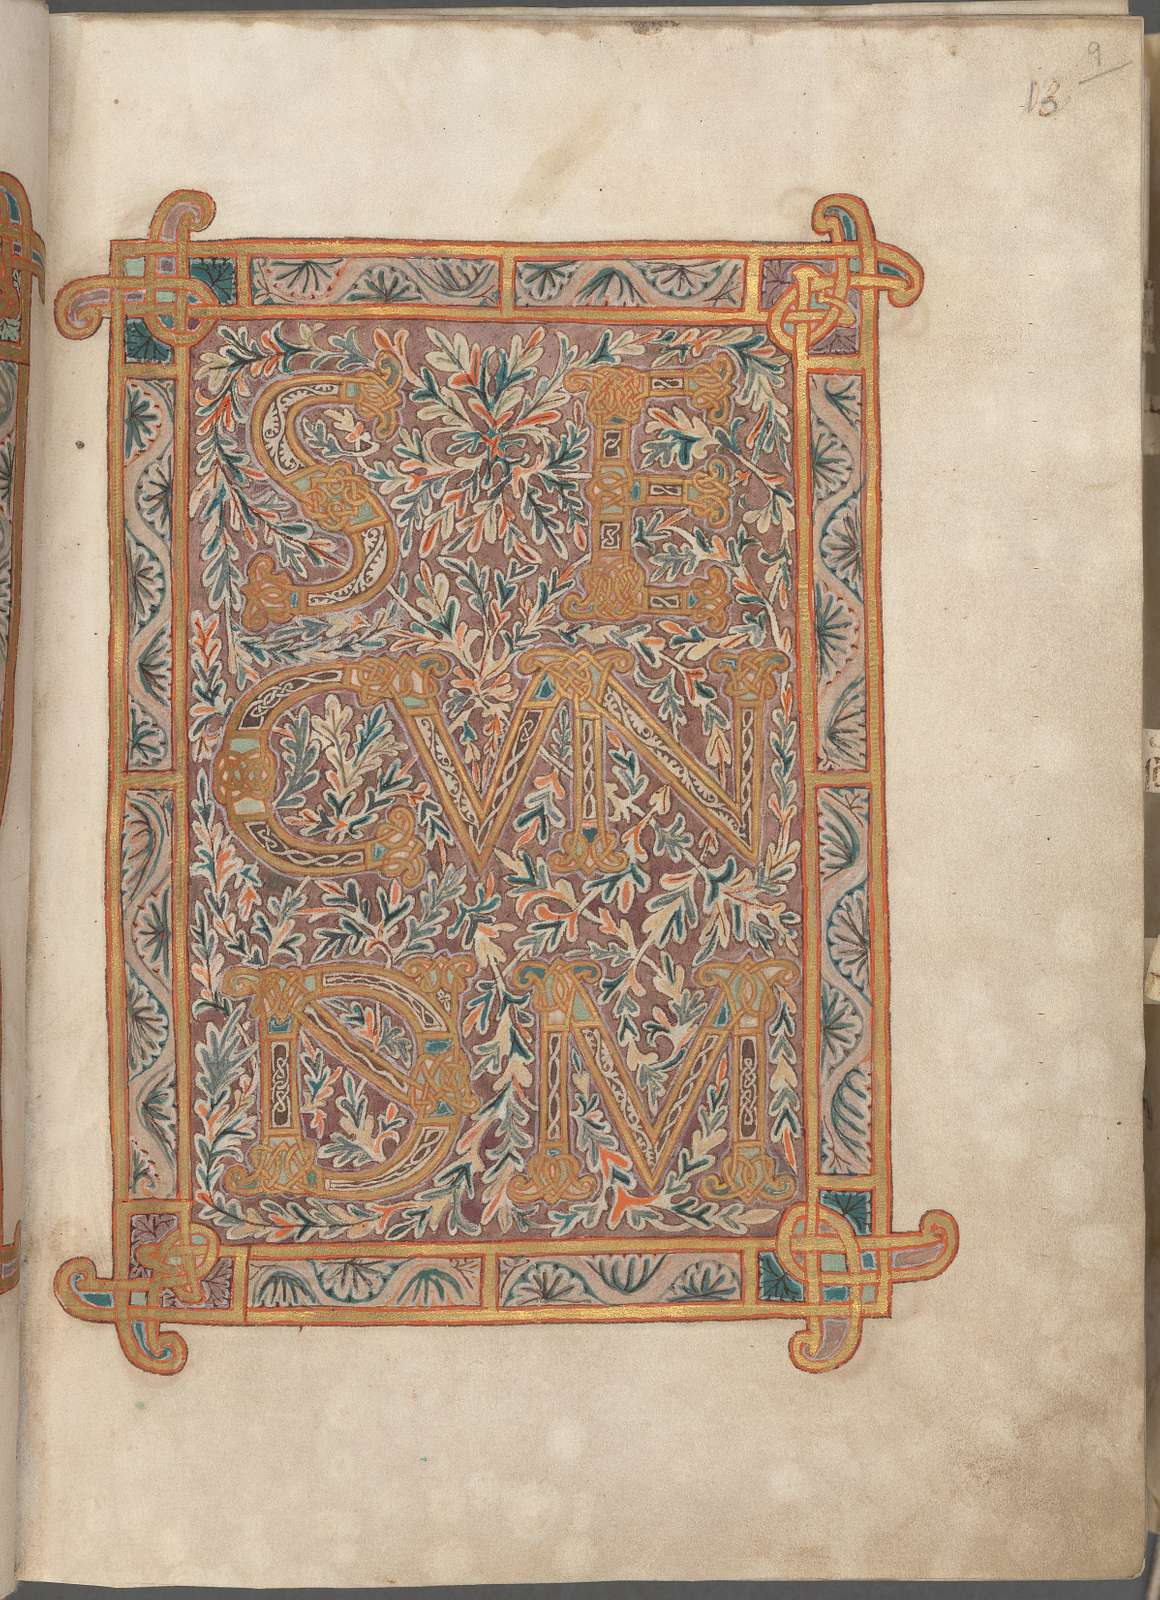 Elaborate text page in gold, purple and green: Secundum